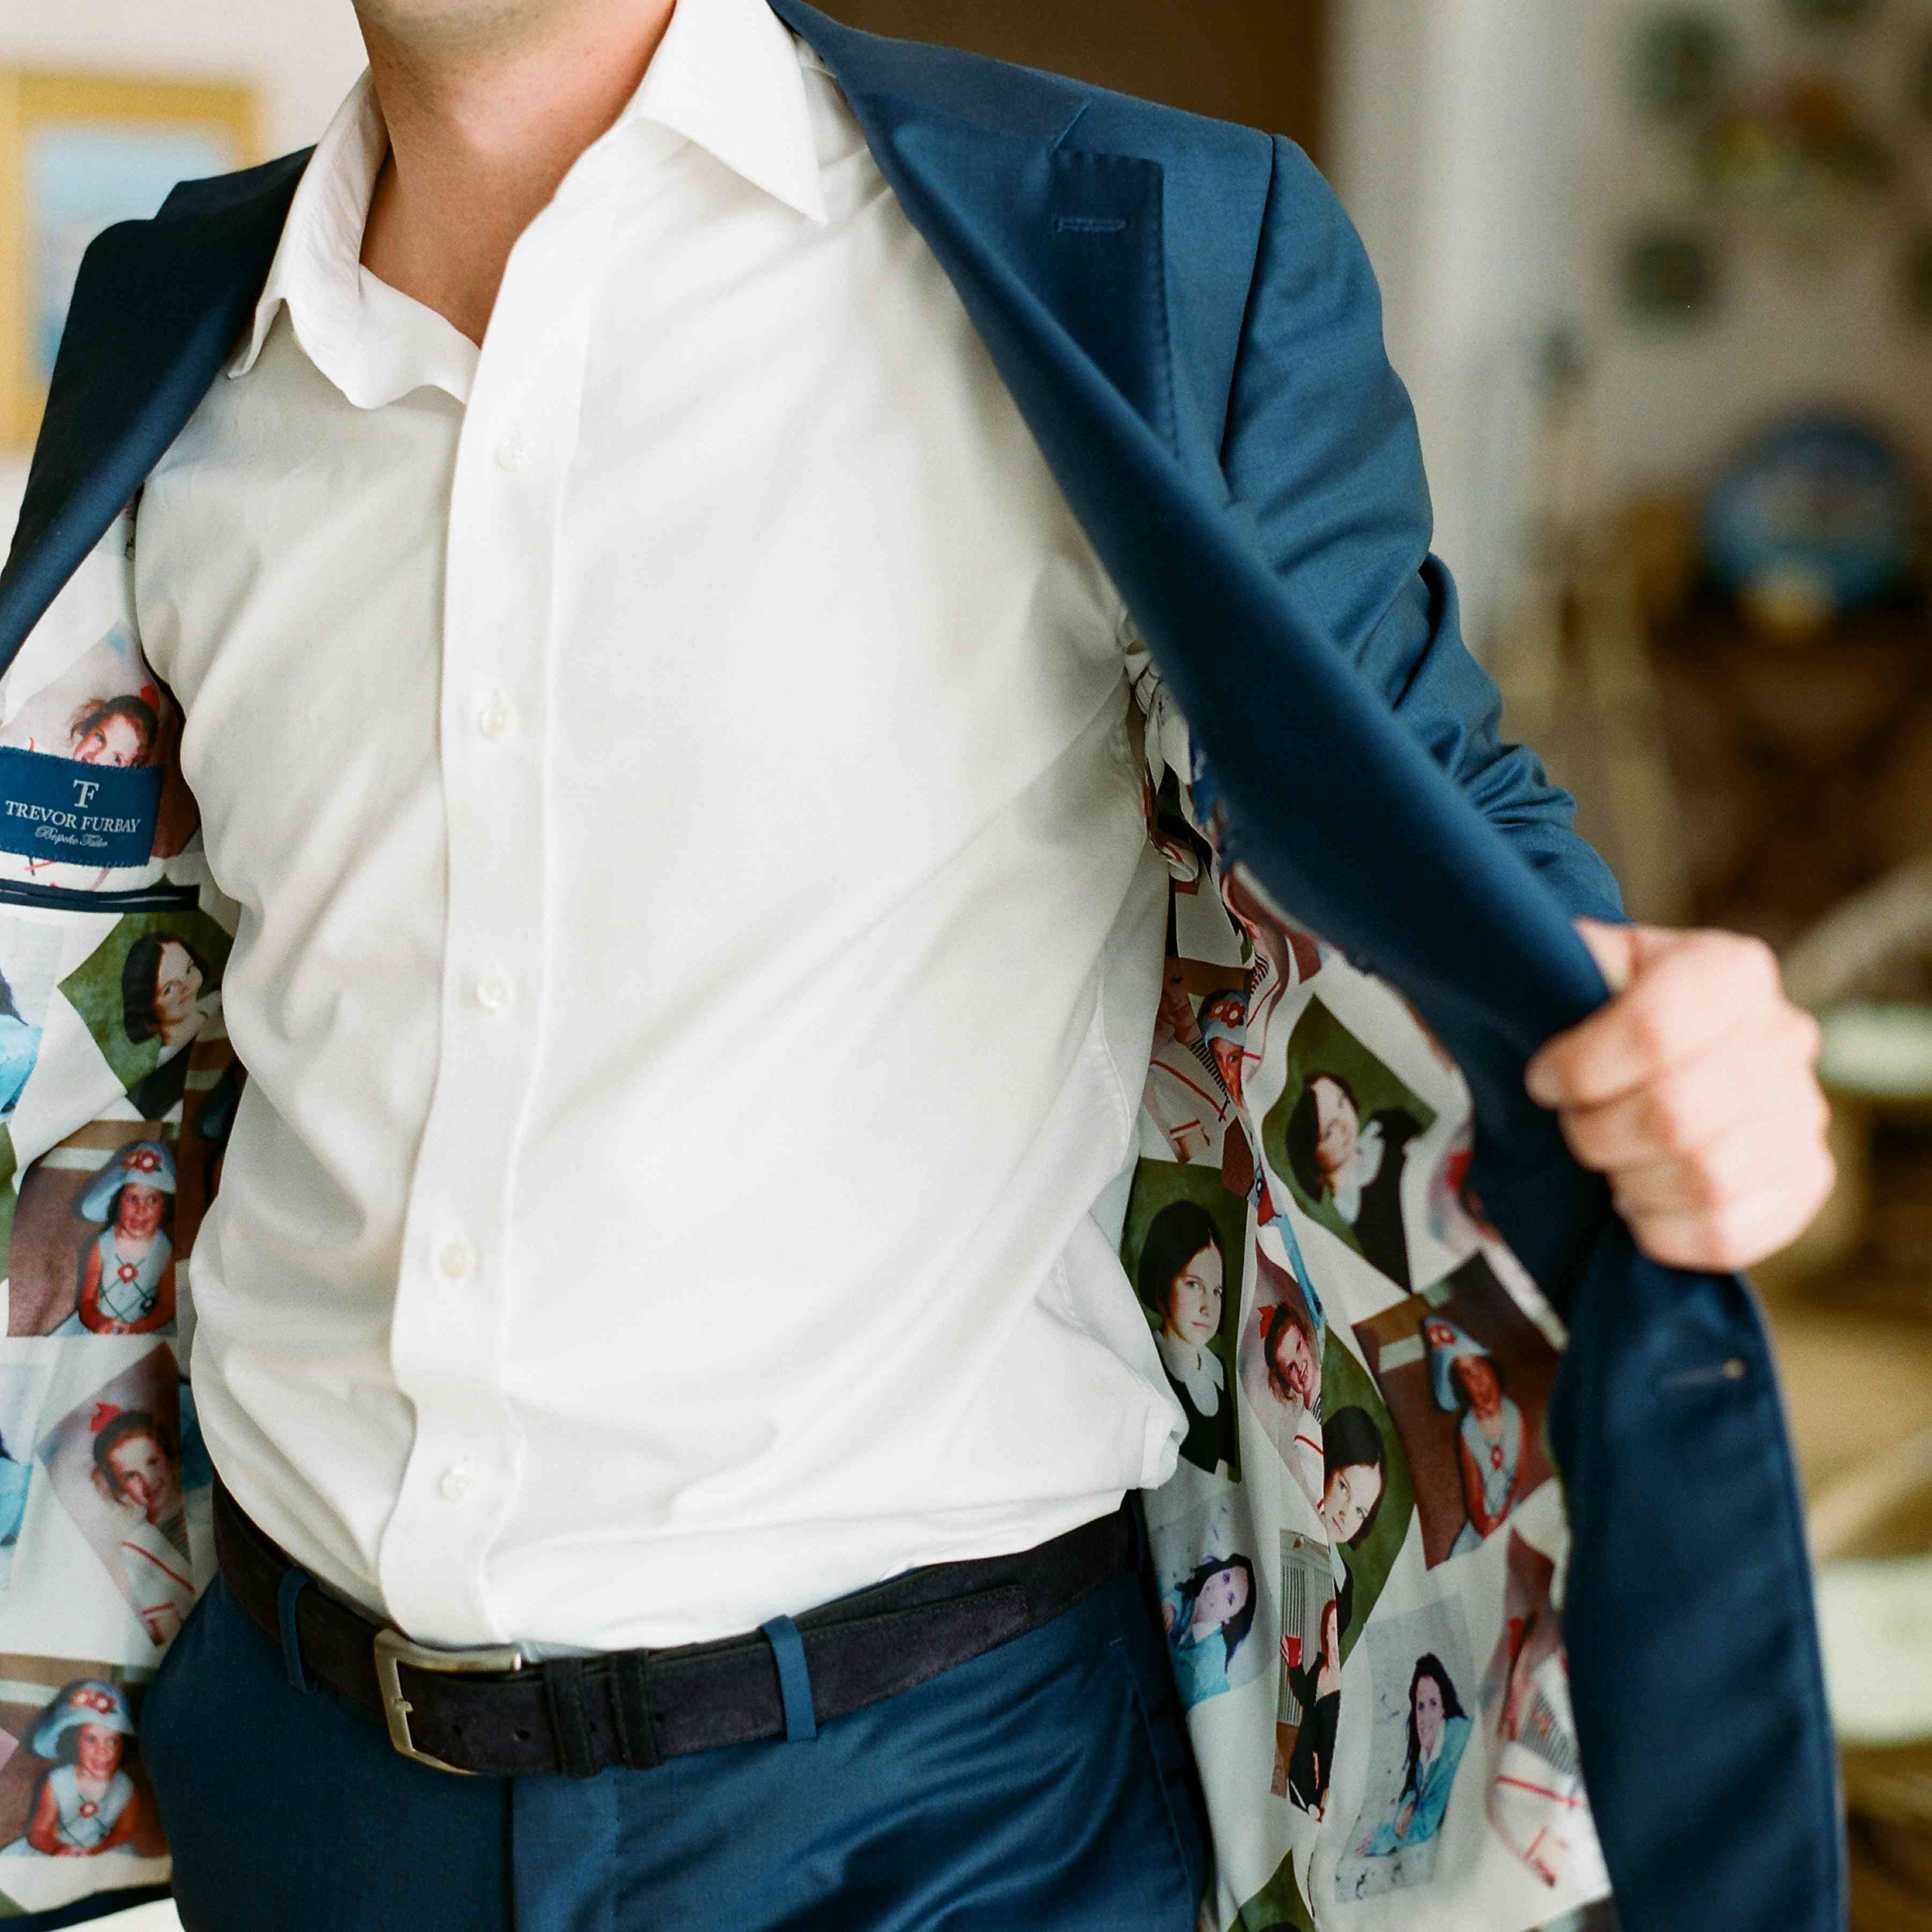 groom's jacket lined with photos of the bride